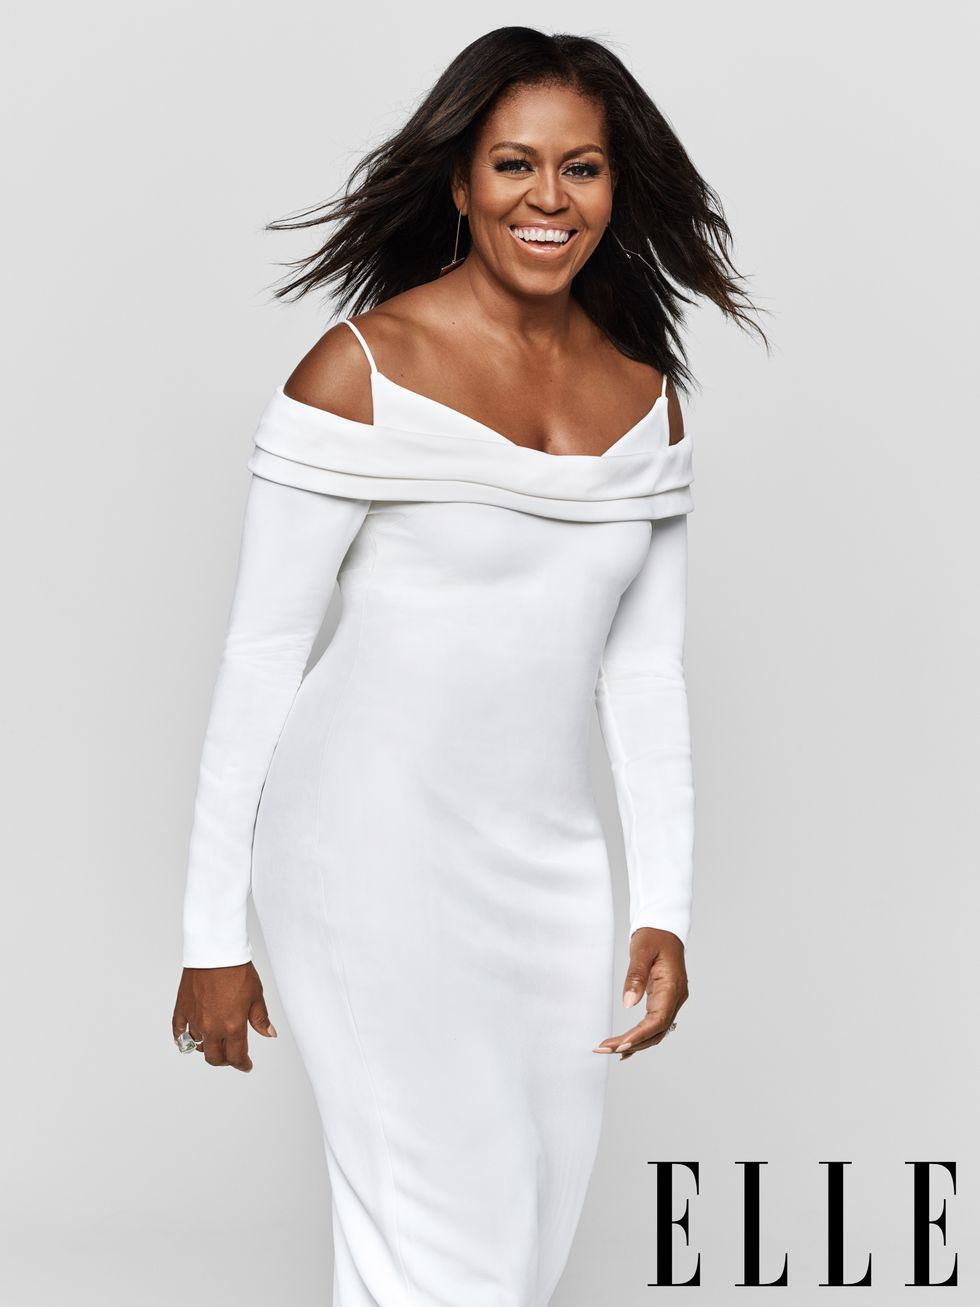 Michelle+Obama+ELLE+US+December+2018+(3).jpg